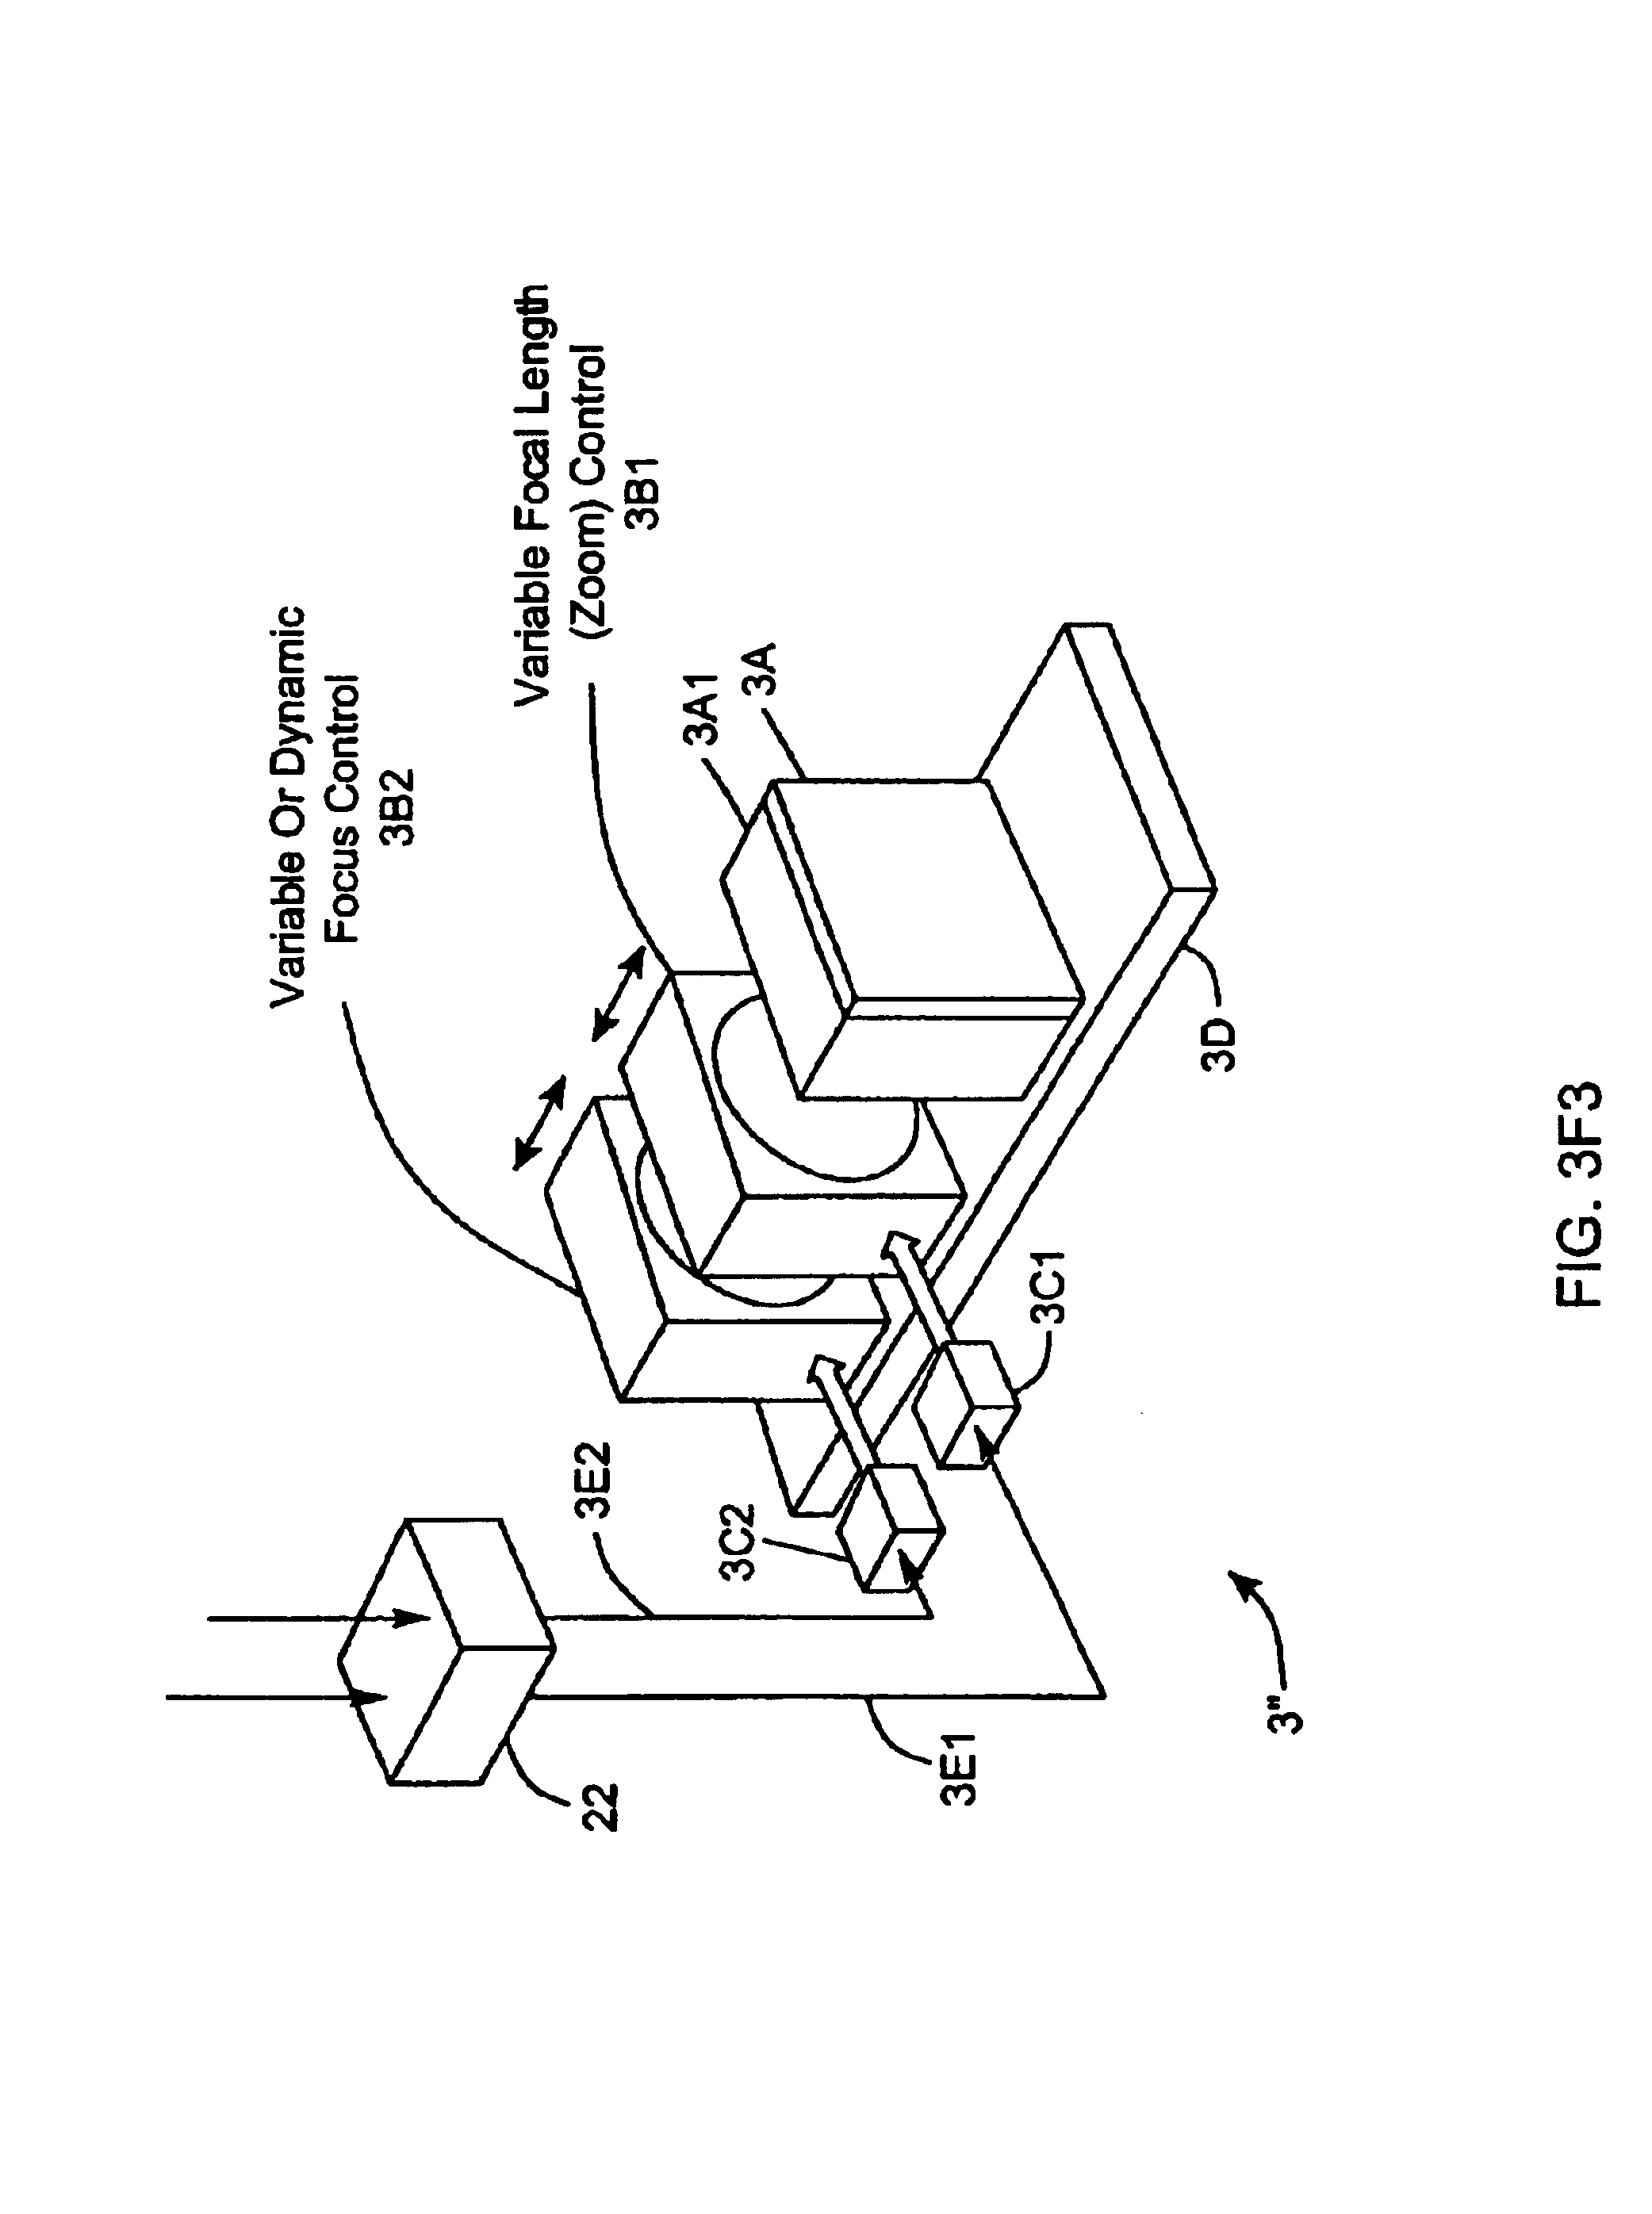 patent us 7 086 594 b2 House Wiring Diagrams patent images